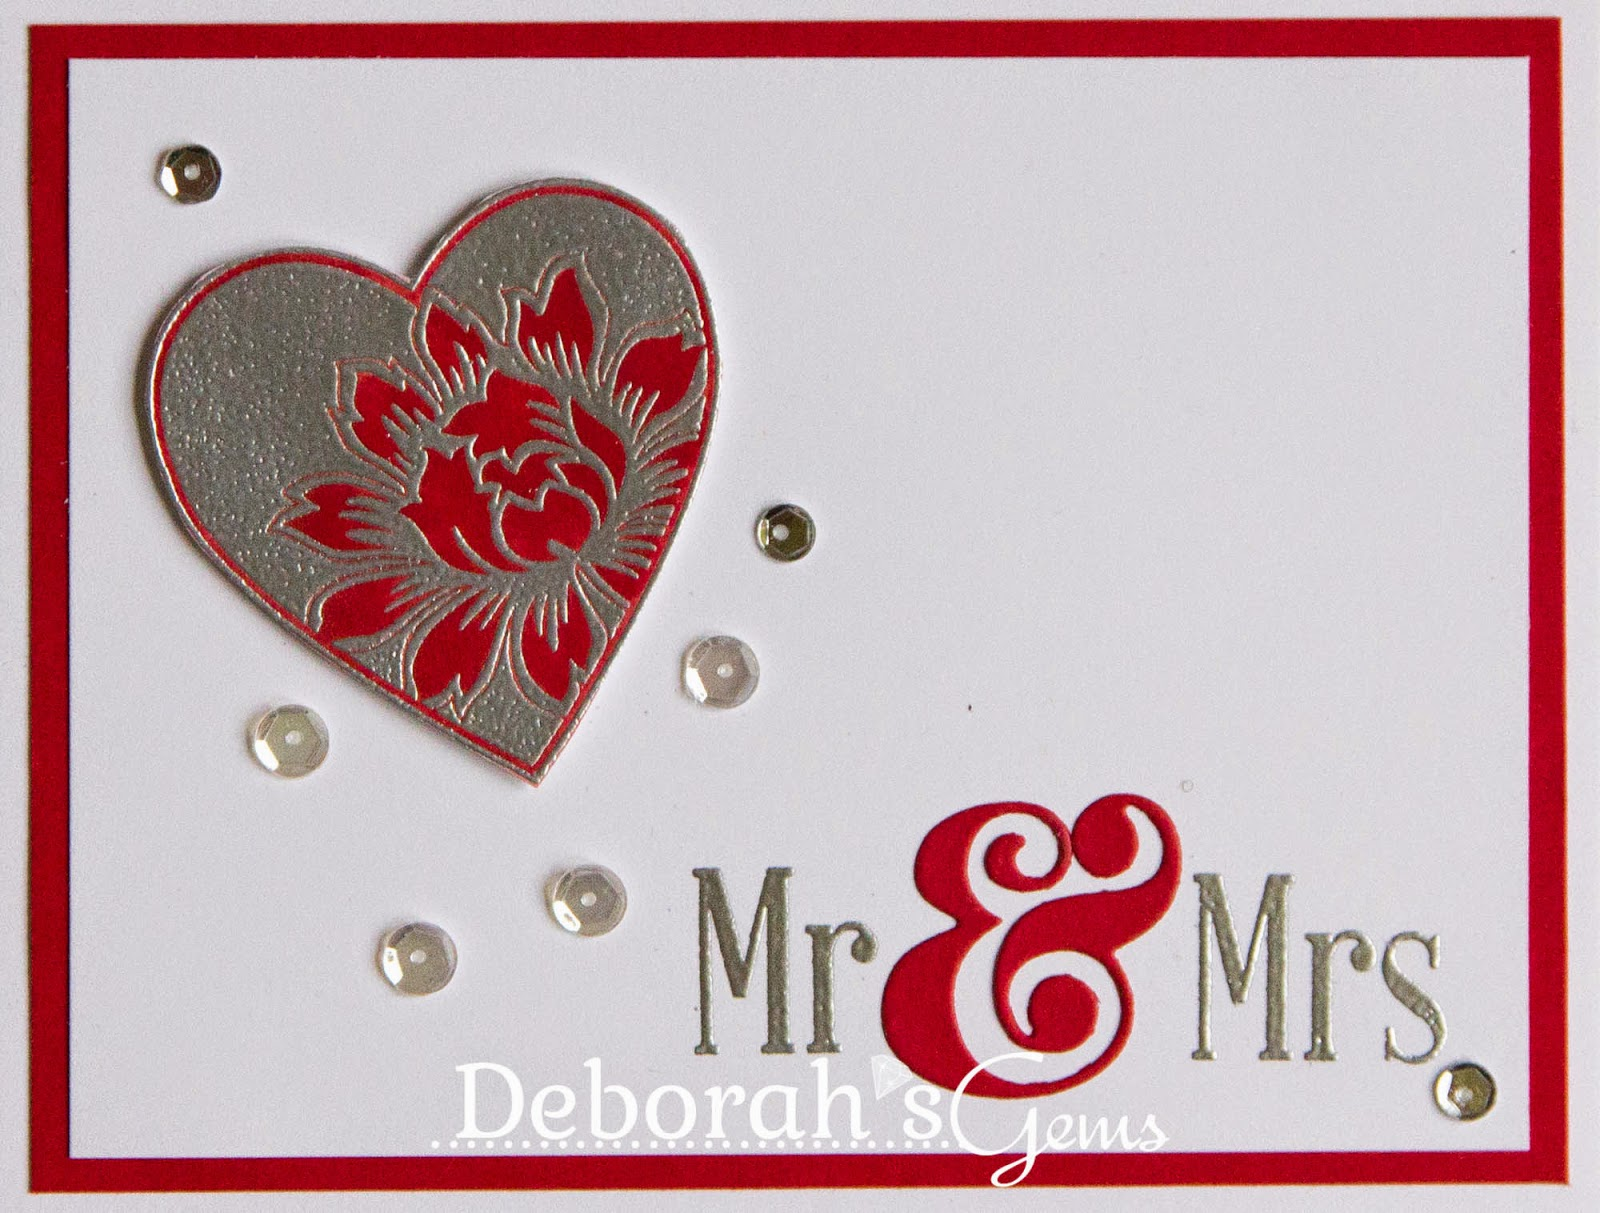 Mr & Mrs - photo by Deborah Frings - Deboah's Gems